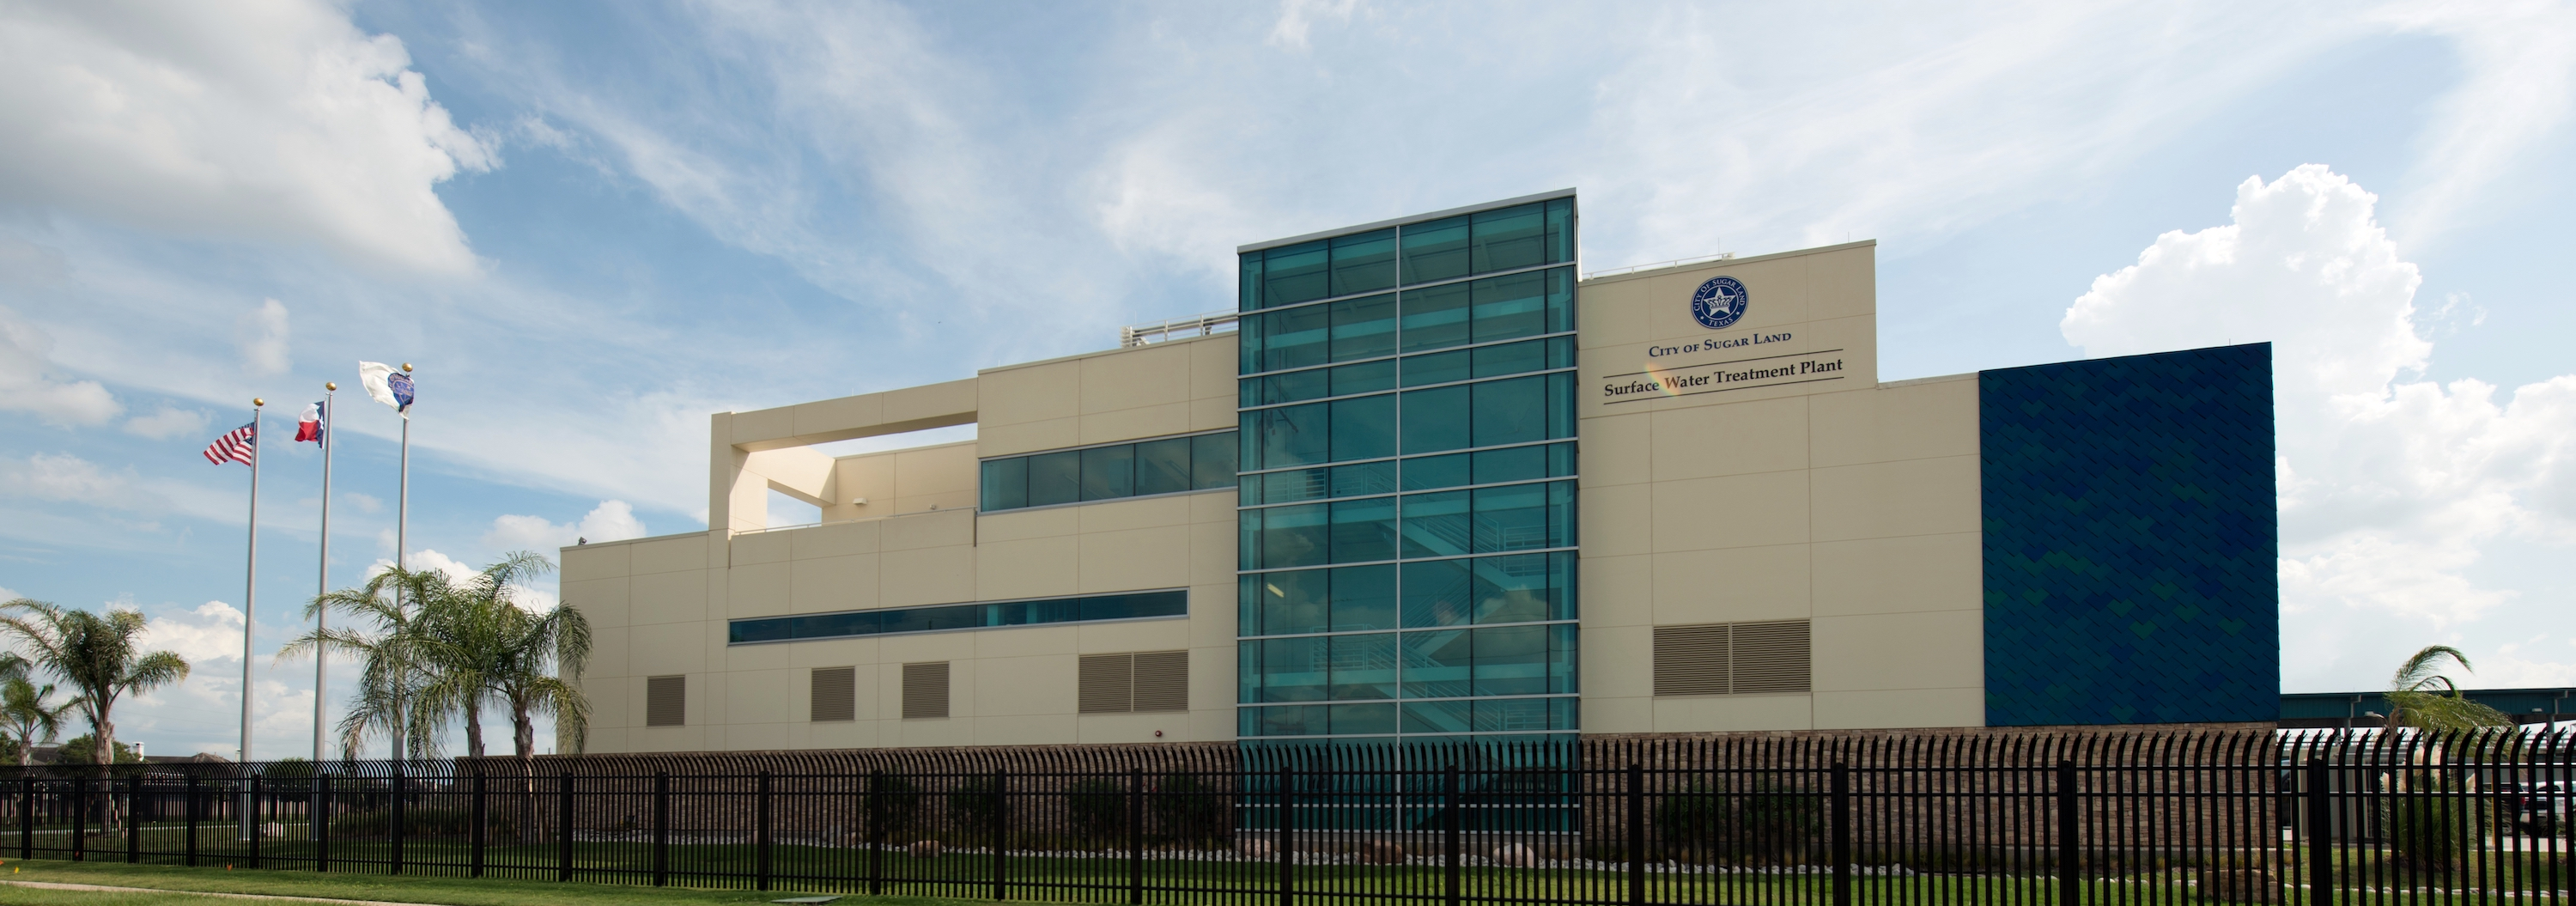 Sugar Land Water Treatment Plant